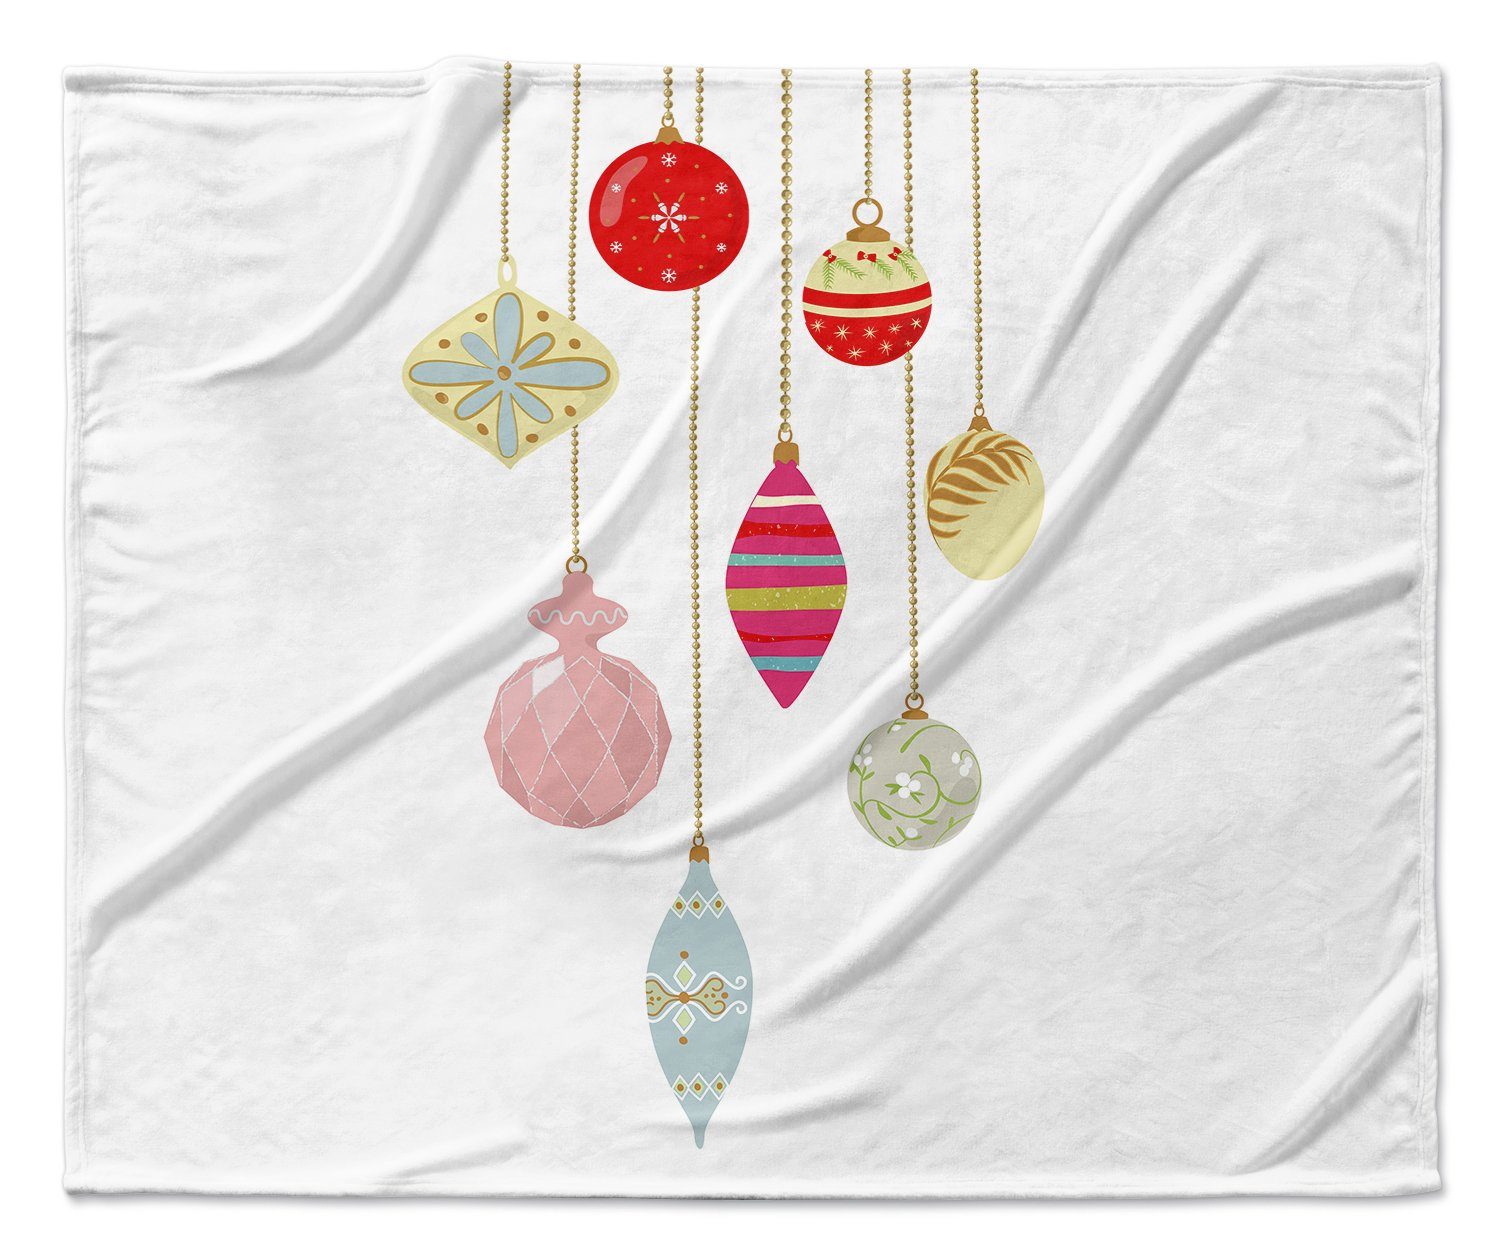 TELAVC1031SUB9 - TRADITIONS Collection KAVKA Designs Christmas Fleece Blanket, Size: 90x90x1 - Red//Gold//Pink//Blue